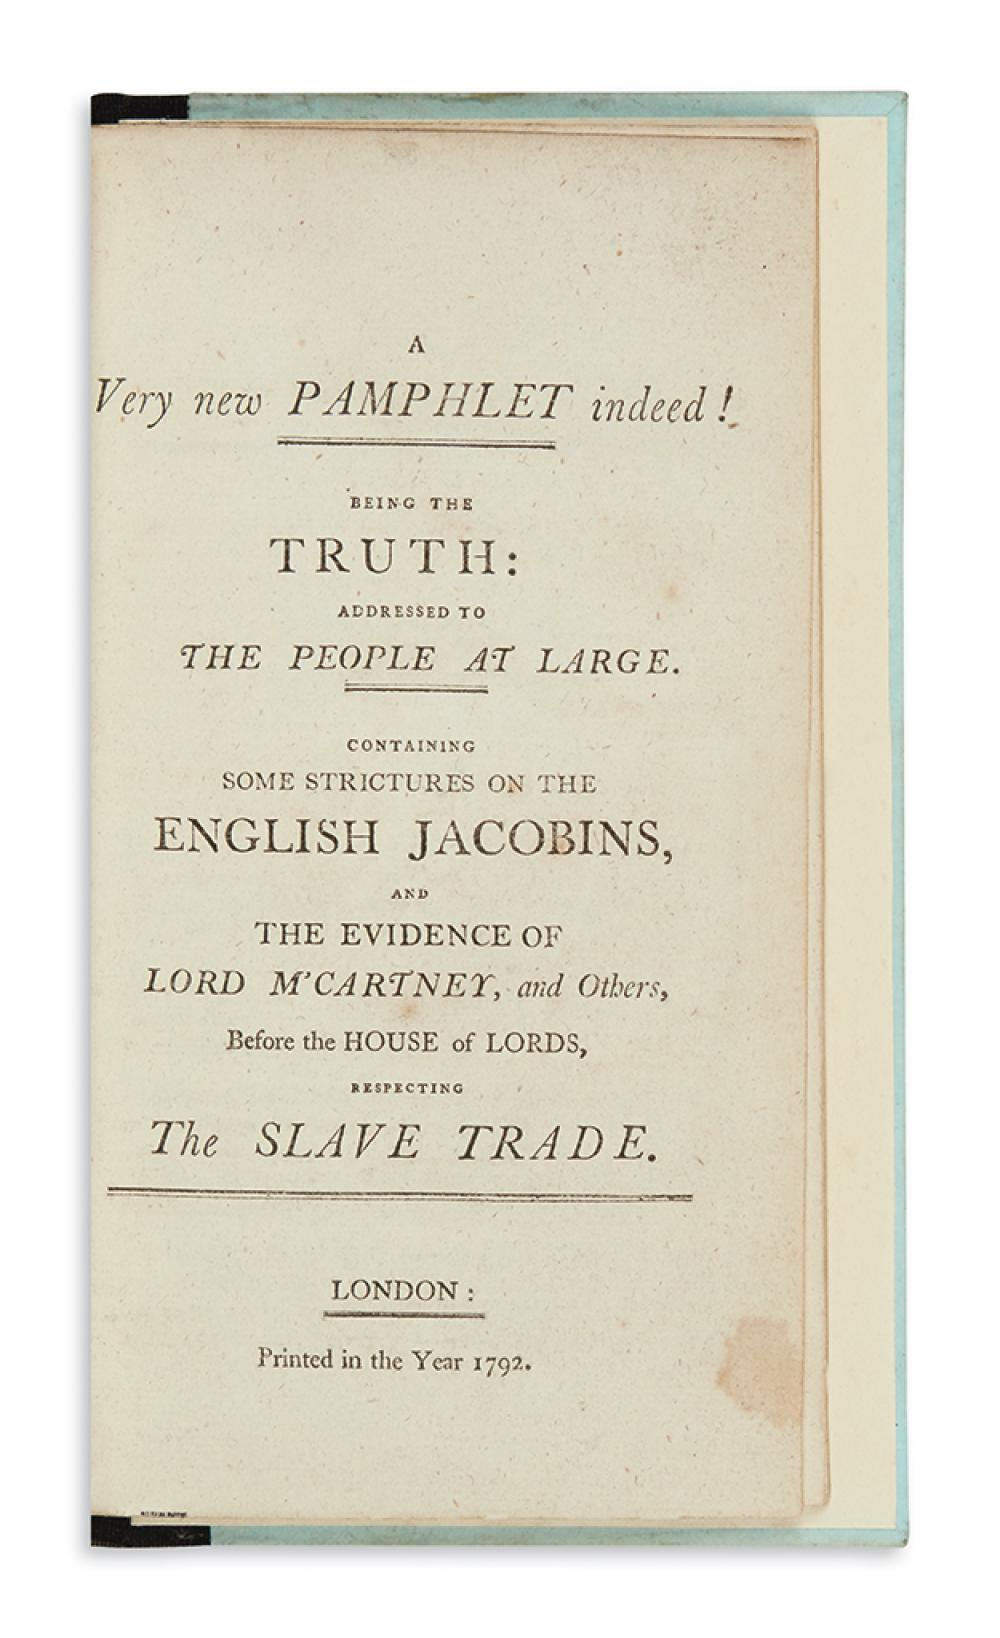 (SLAVERY AND ABOLITION.) A Very New Pamphlet Indeed, being the Truth Addressed to the People at Large . . . Respecting the Slave Trade.